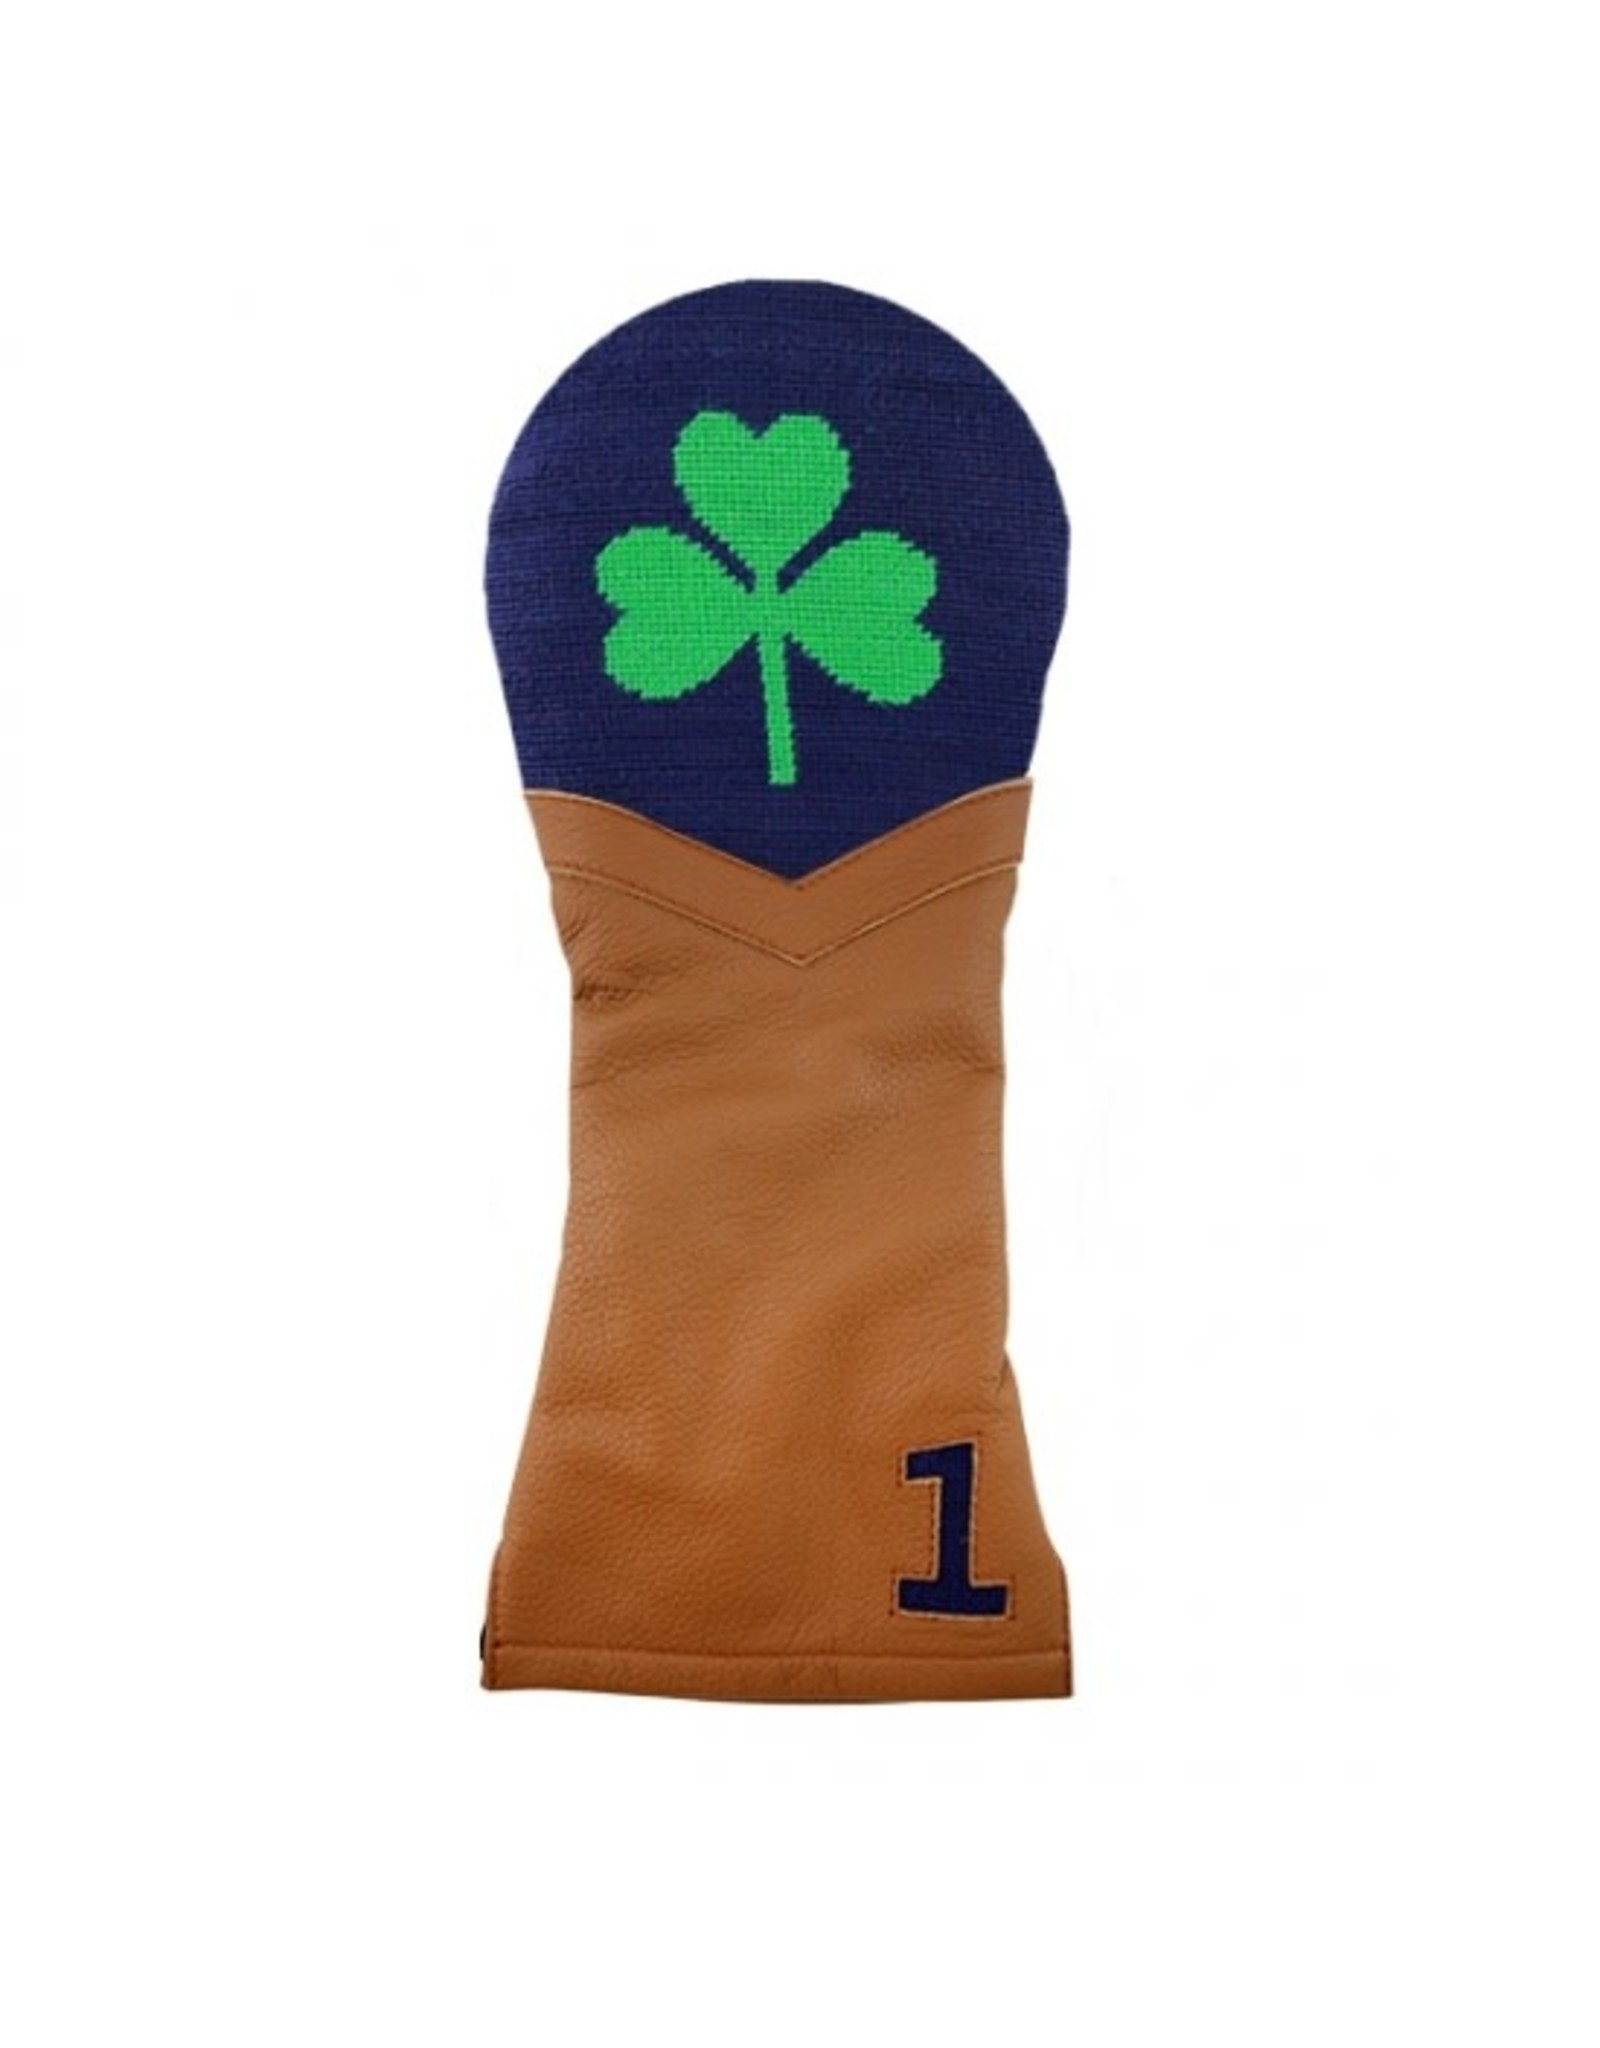 Smathers & Branson Clover Golf Club Cover